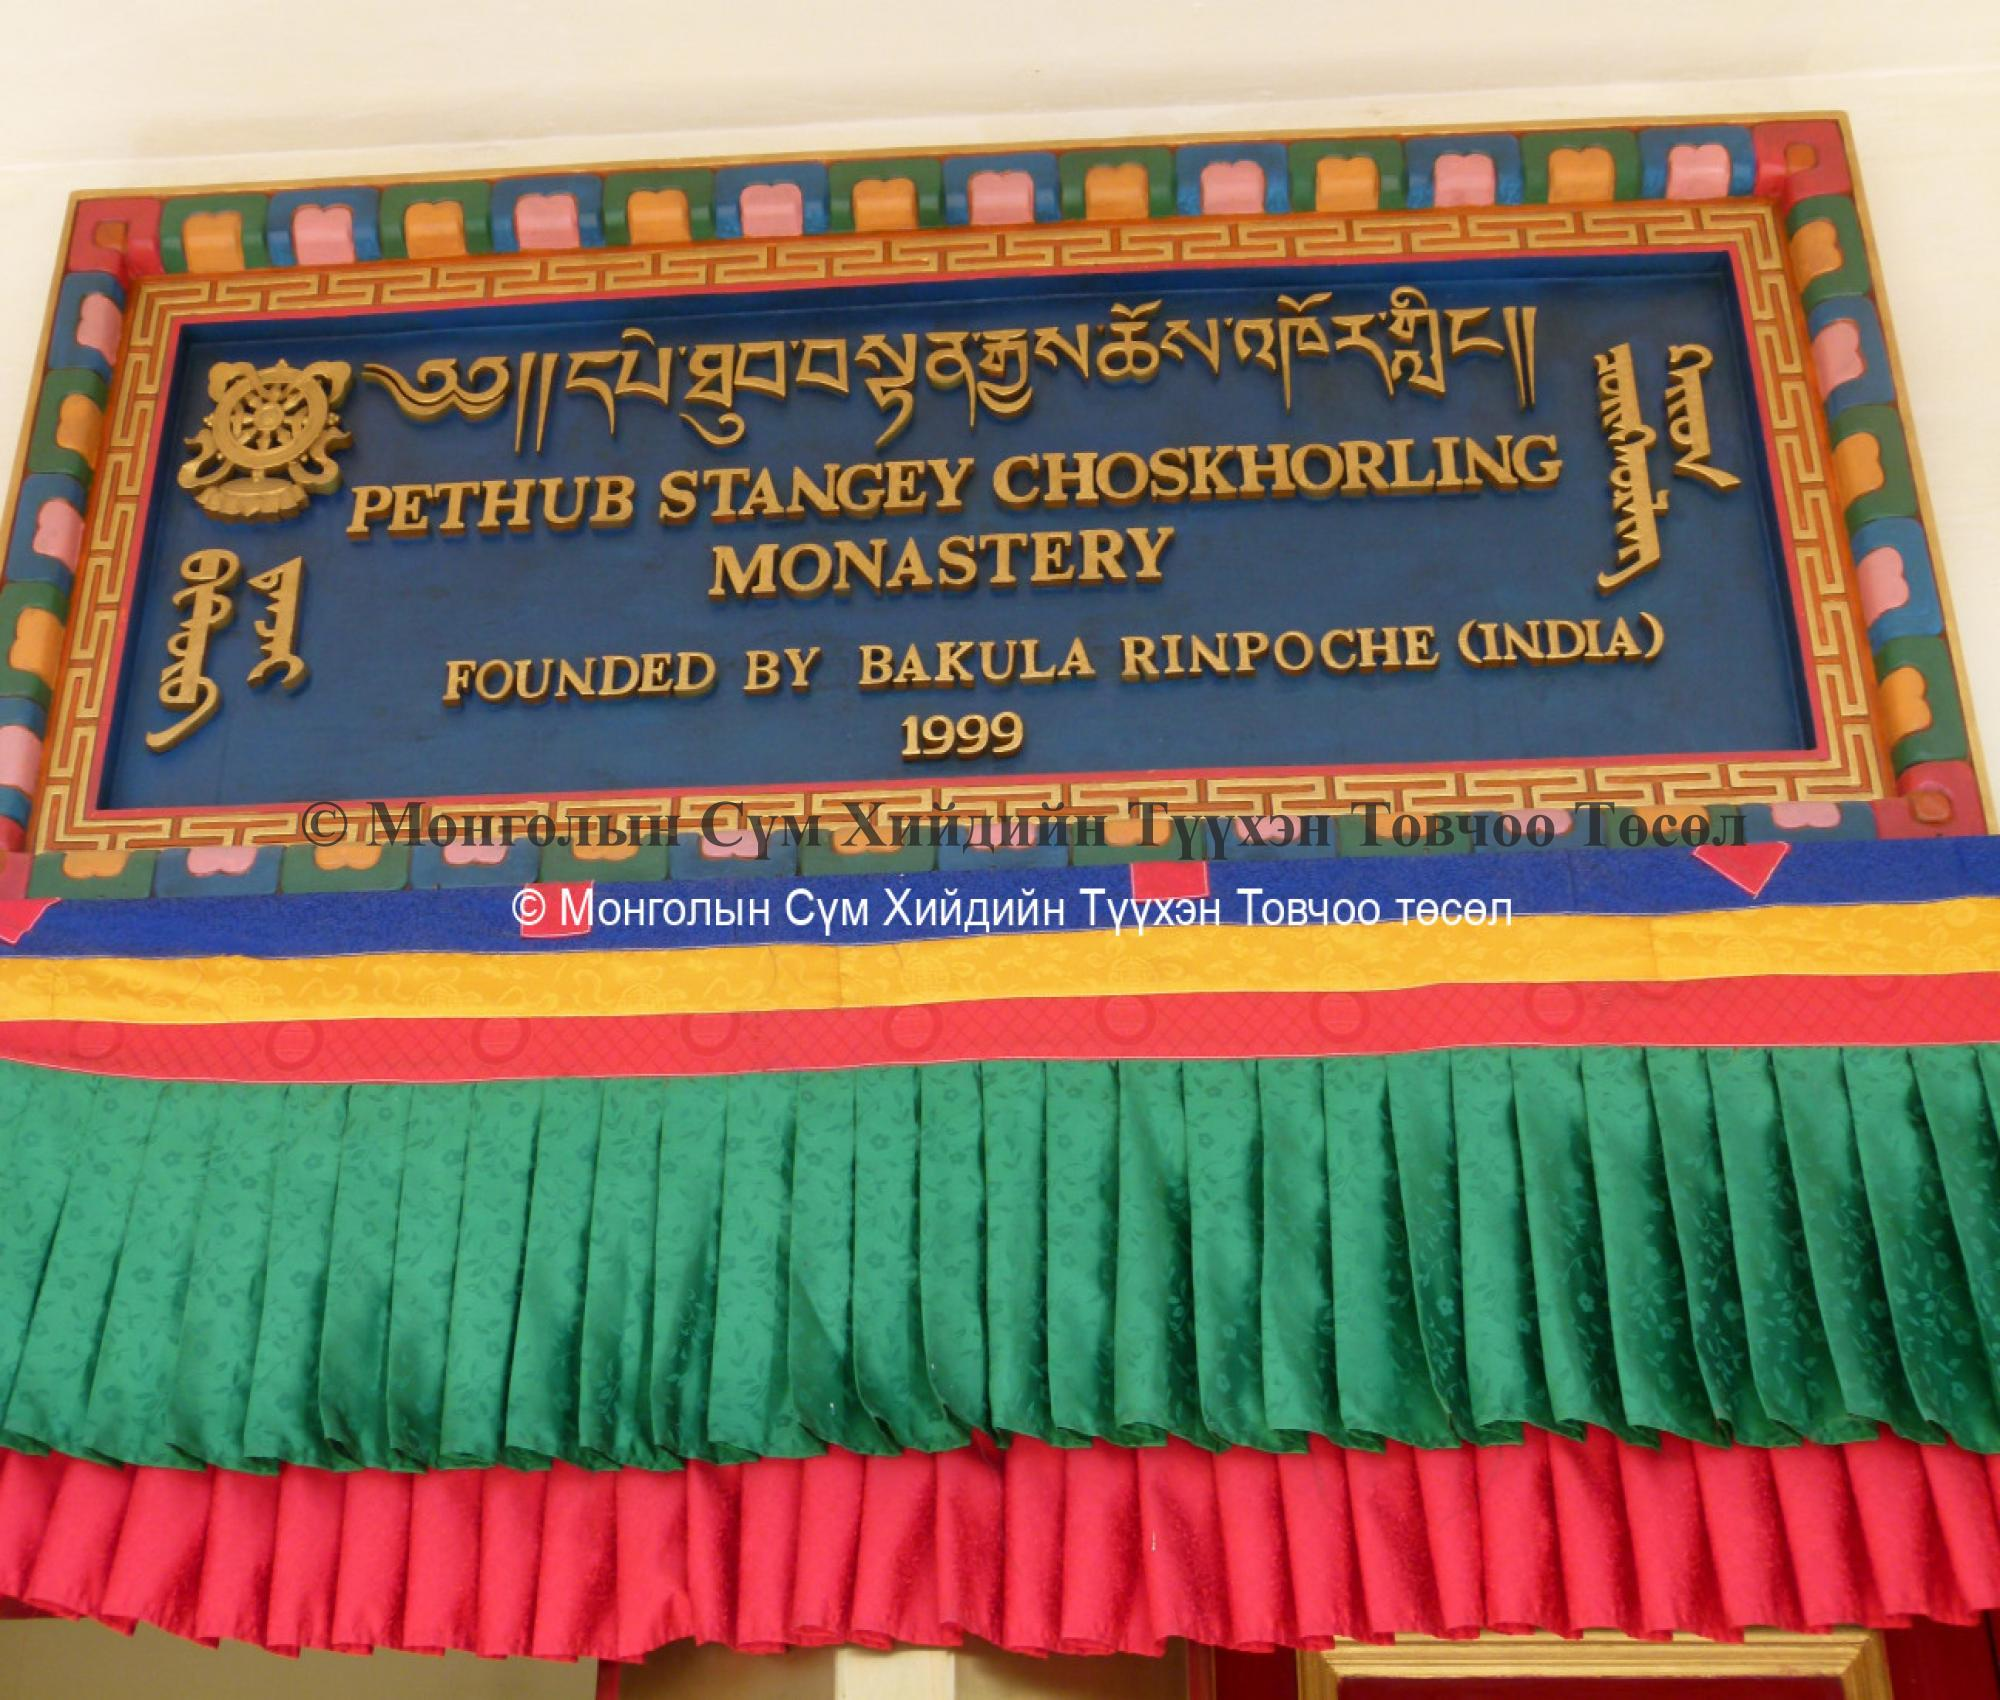 Full name of the monastery